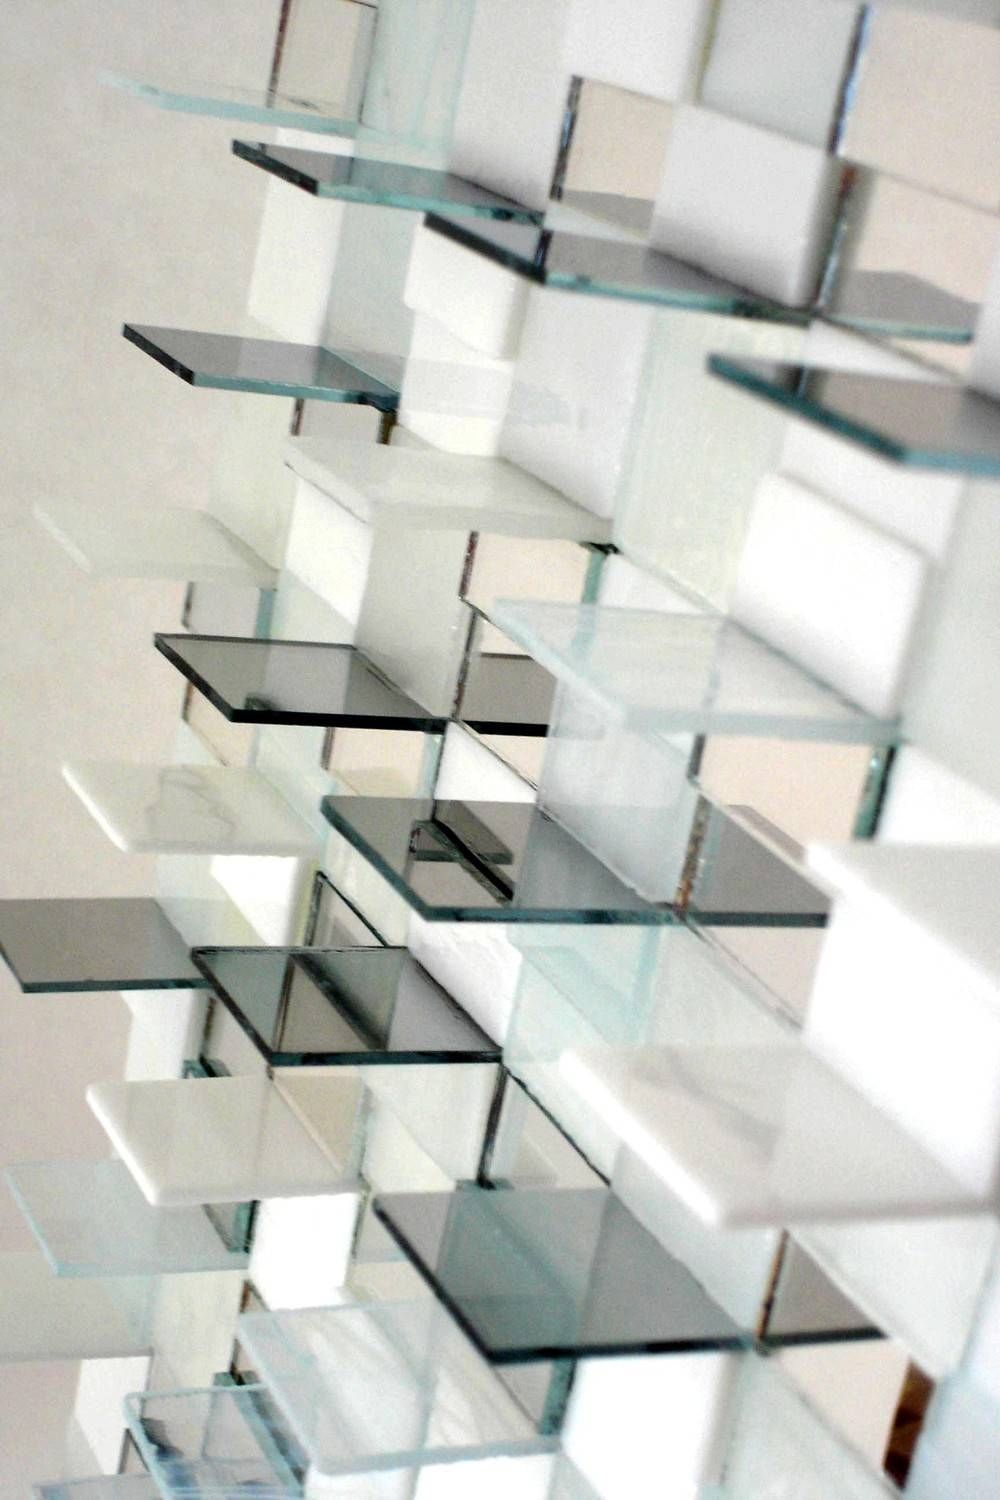 Abstract Mirror Wall Art – Wall Murals Ideas With Regard To Newest Abstract Mirror Wall Art (View 2 of 15)